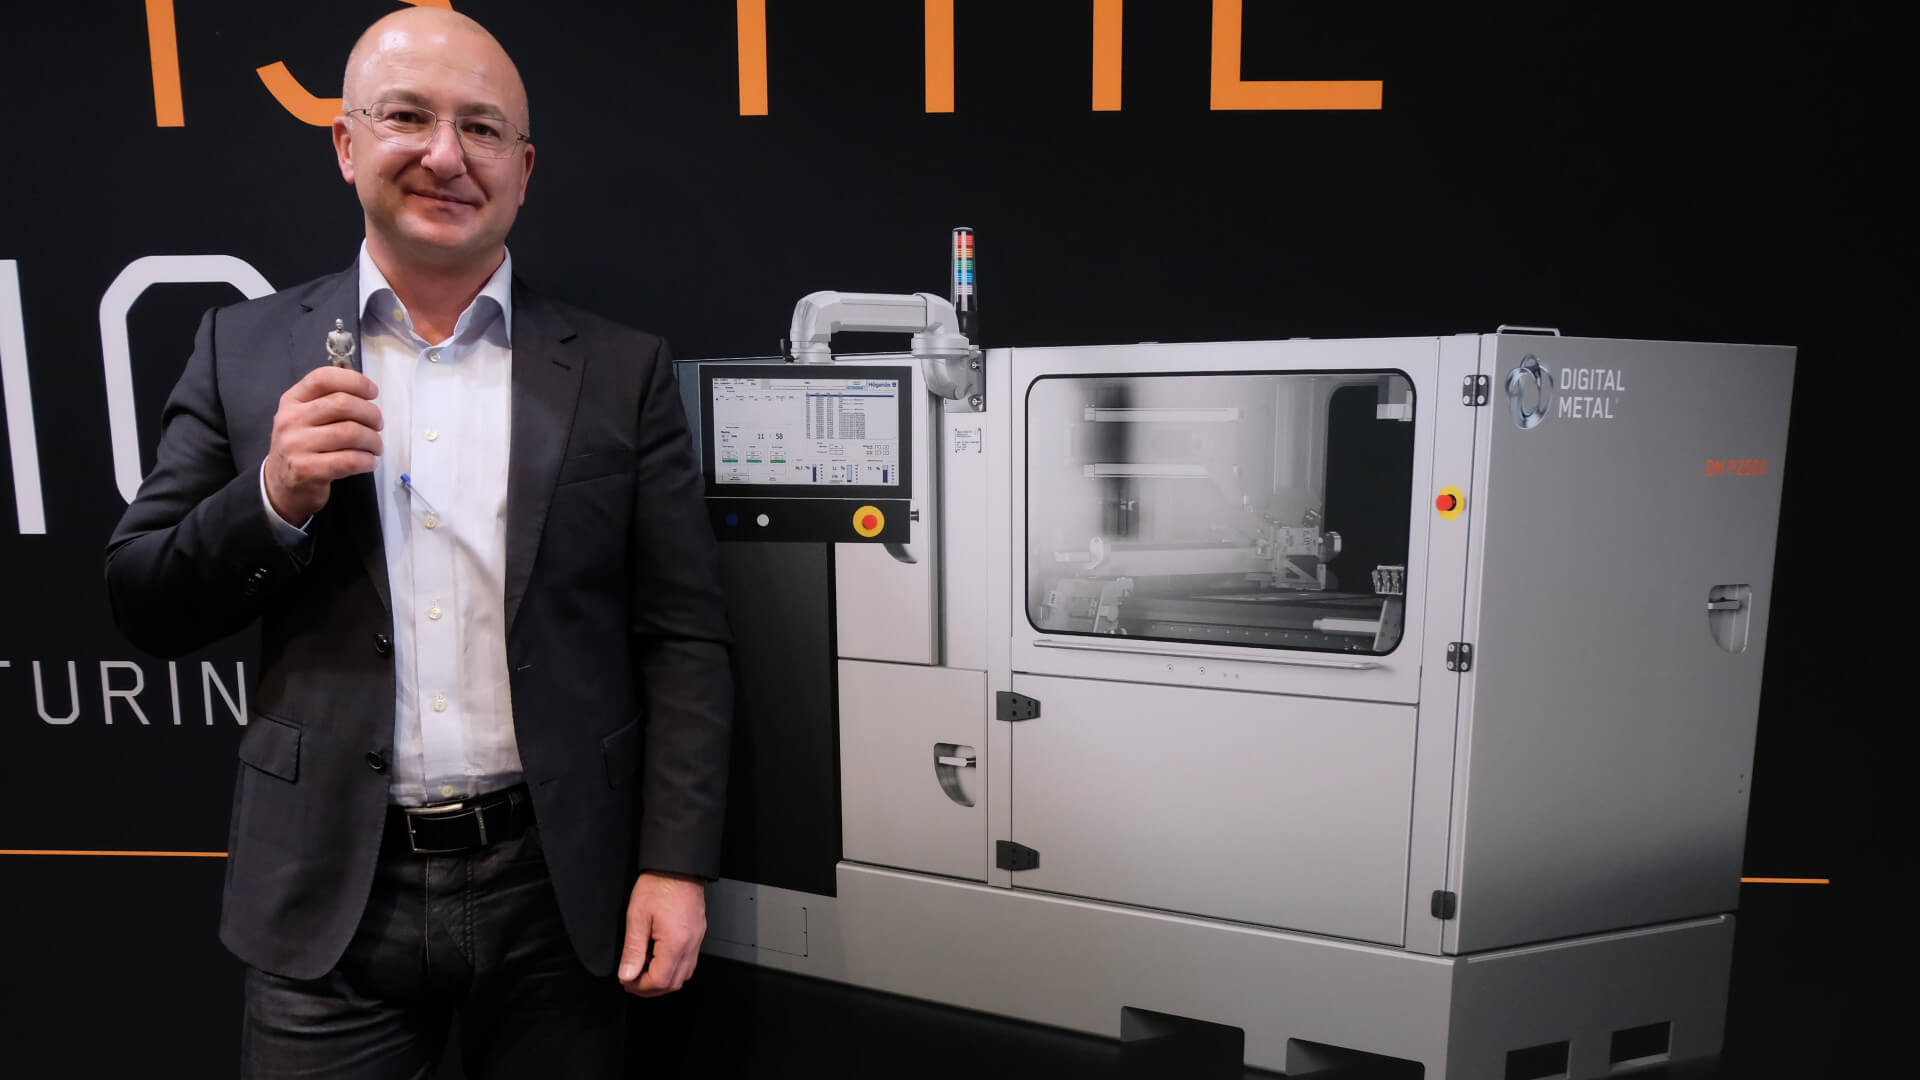 Interview With Digital Metal: One Giant Leap For Small Metal 3D Printed Parts | All3DP